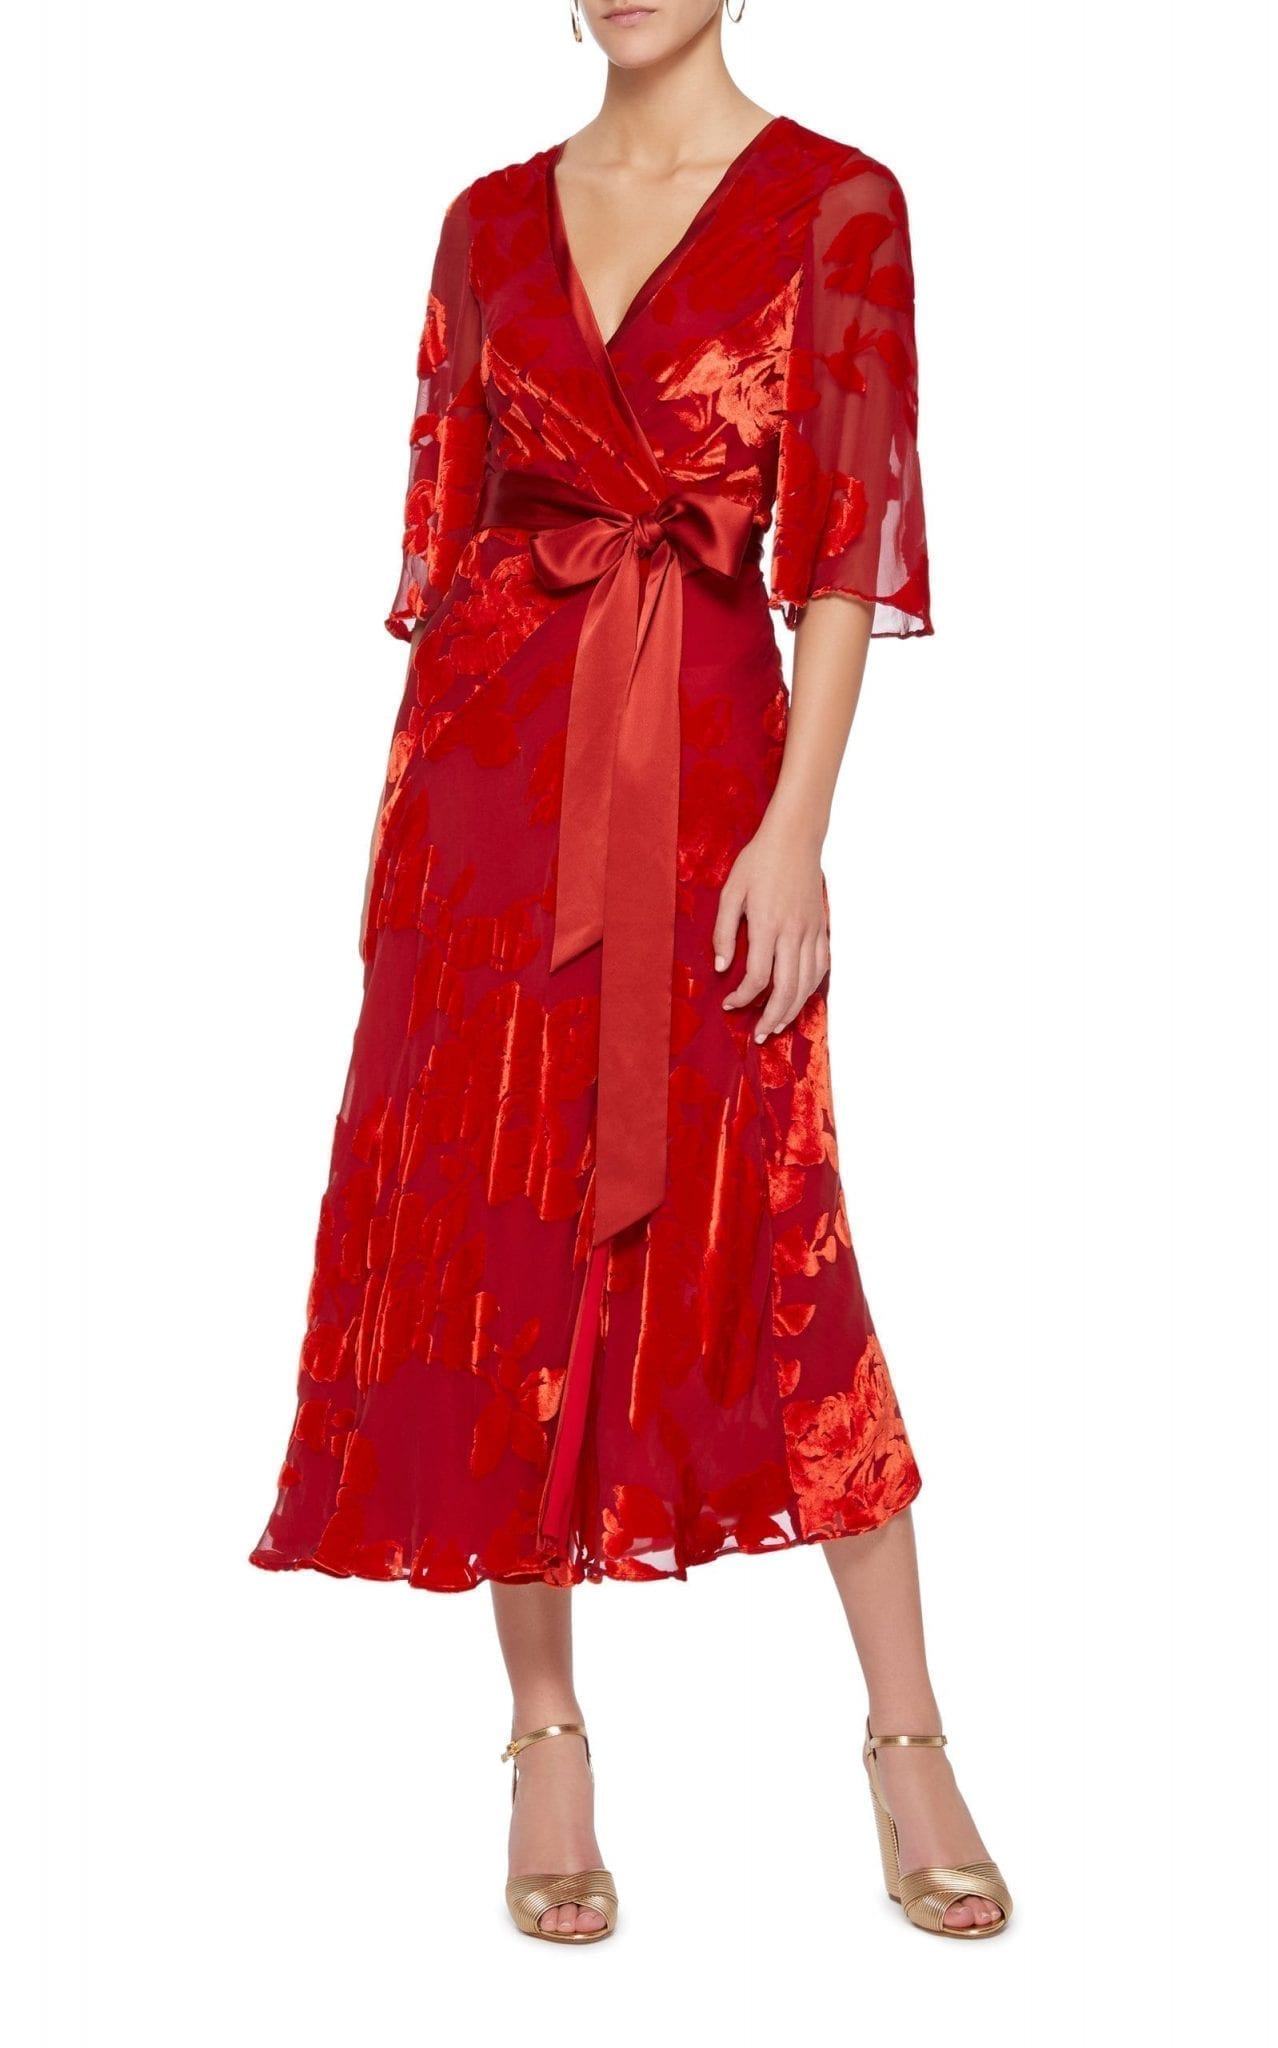 GALVAN Rose Wrap Red Dress